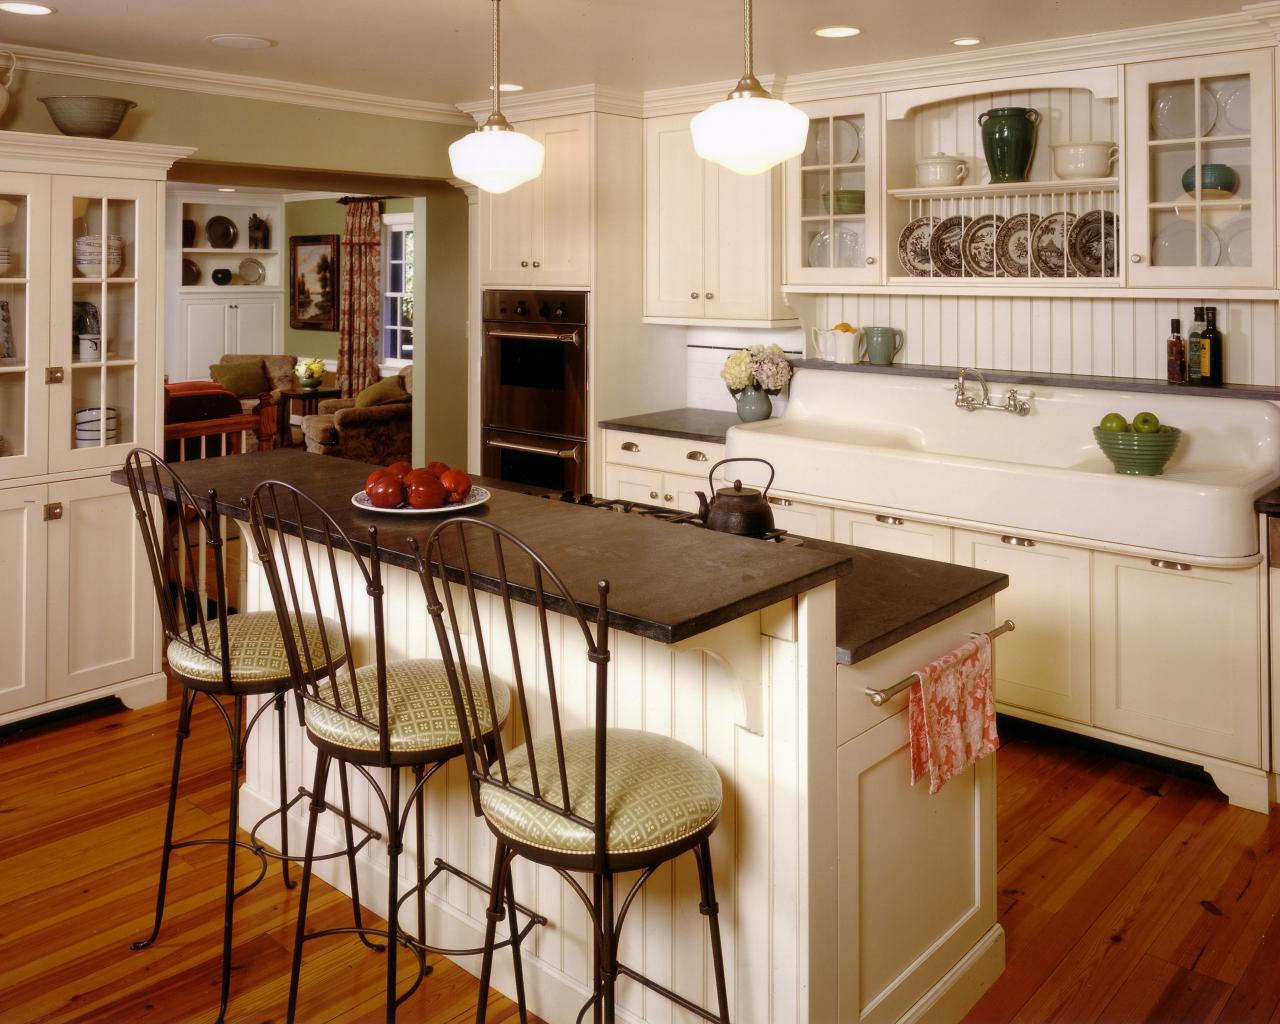 Country Kitchen Images Country Kitchen Design Pictures Ideas & Tips From Hgtv  Hgtv